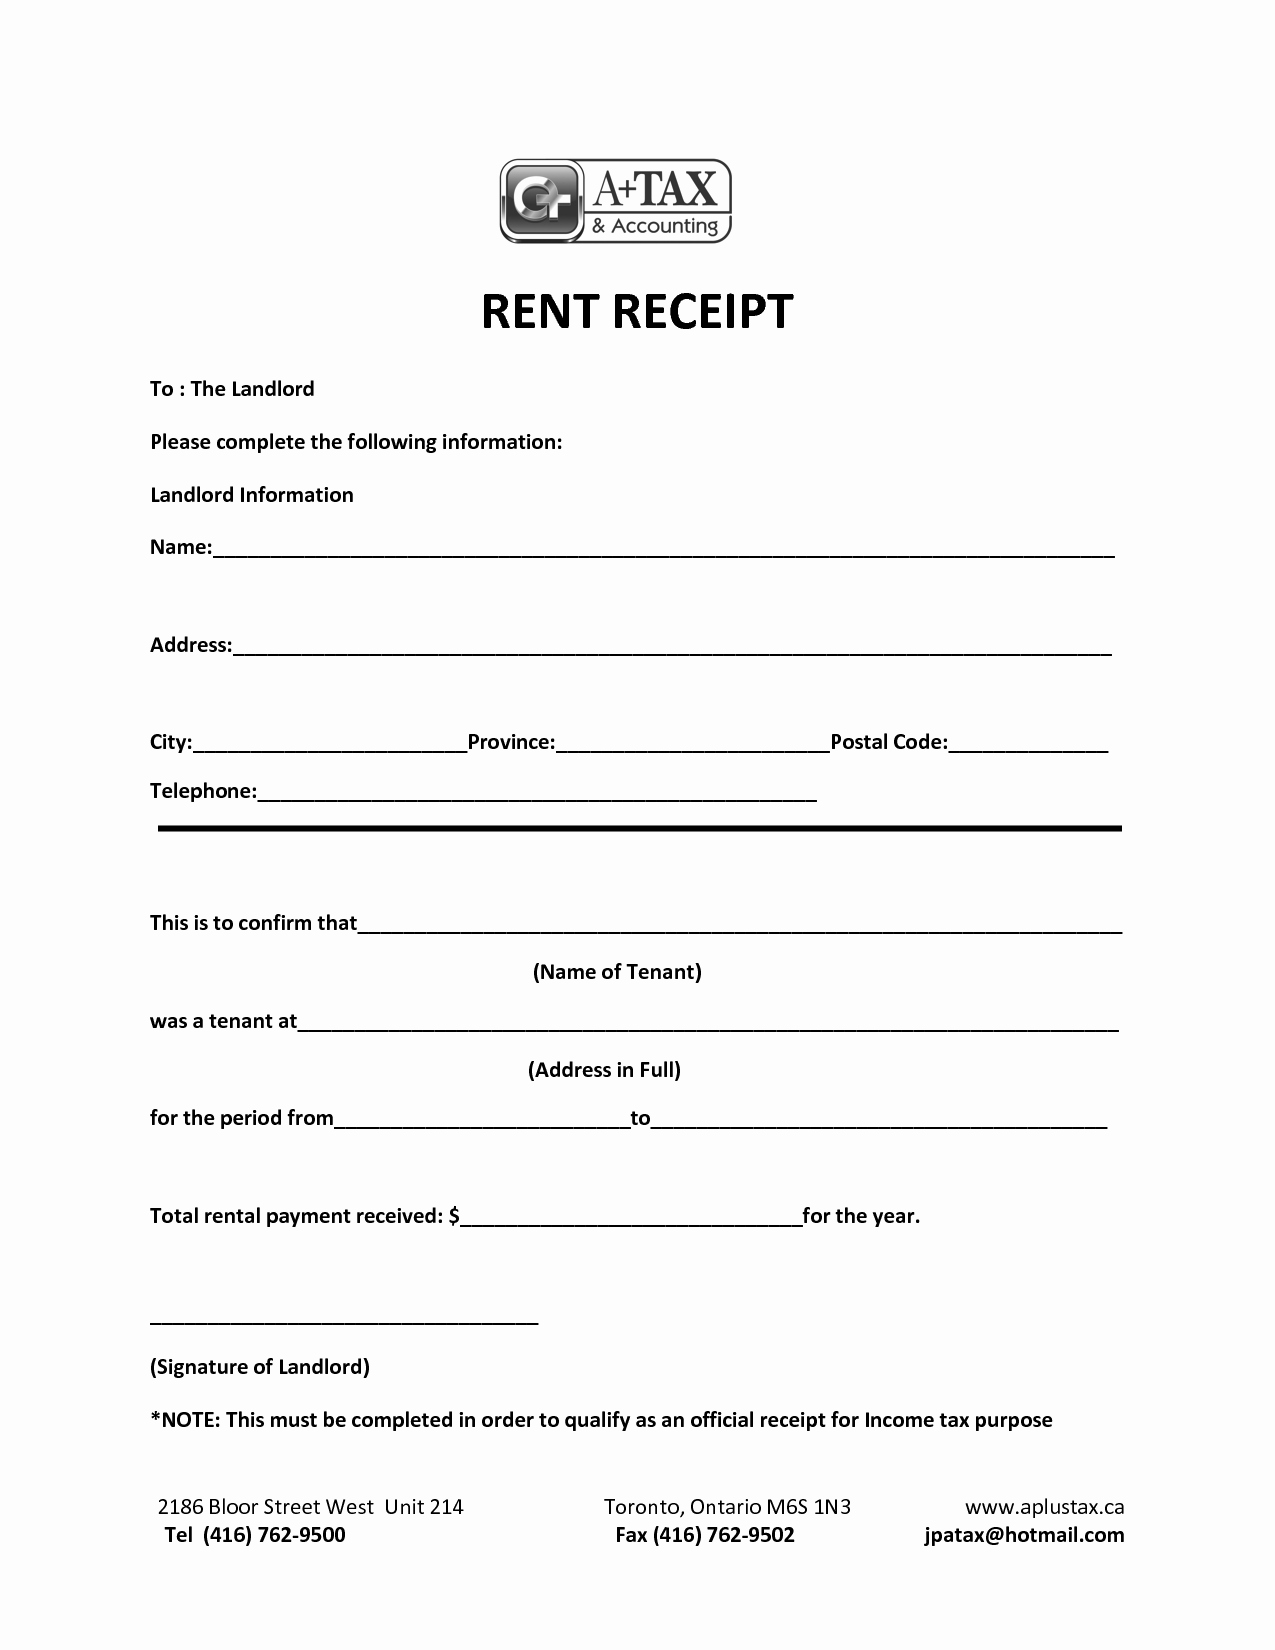 Fake Credit Report Template Elegant Free Rental Receipt Template Word – Rent Receipt